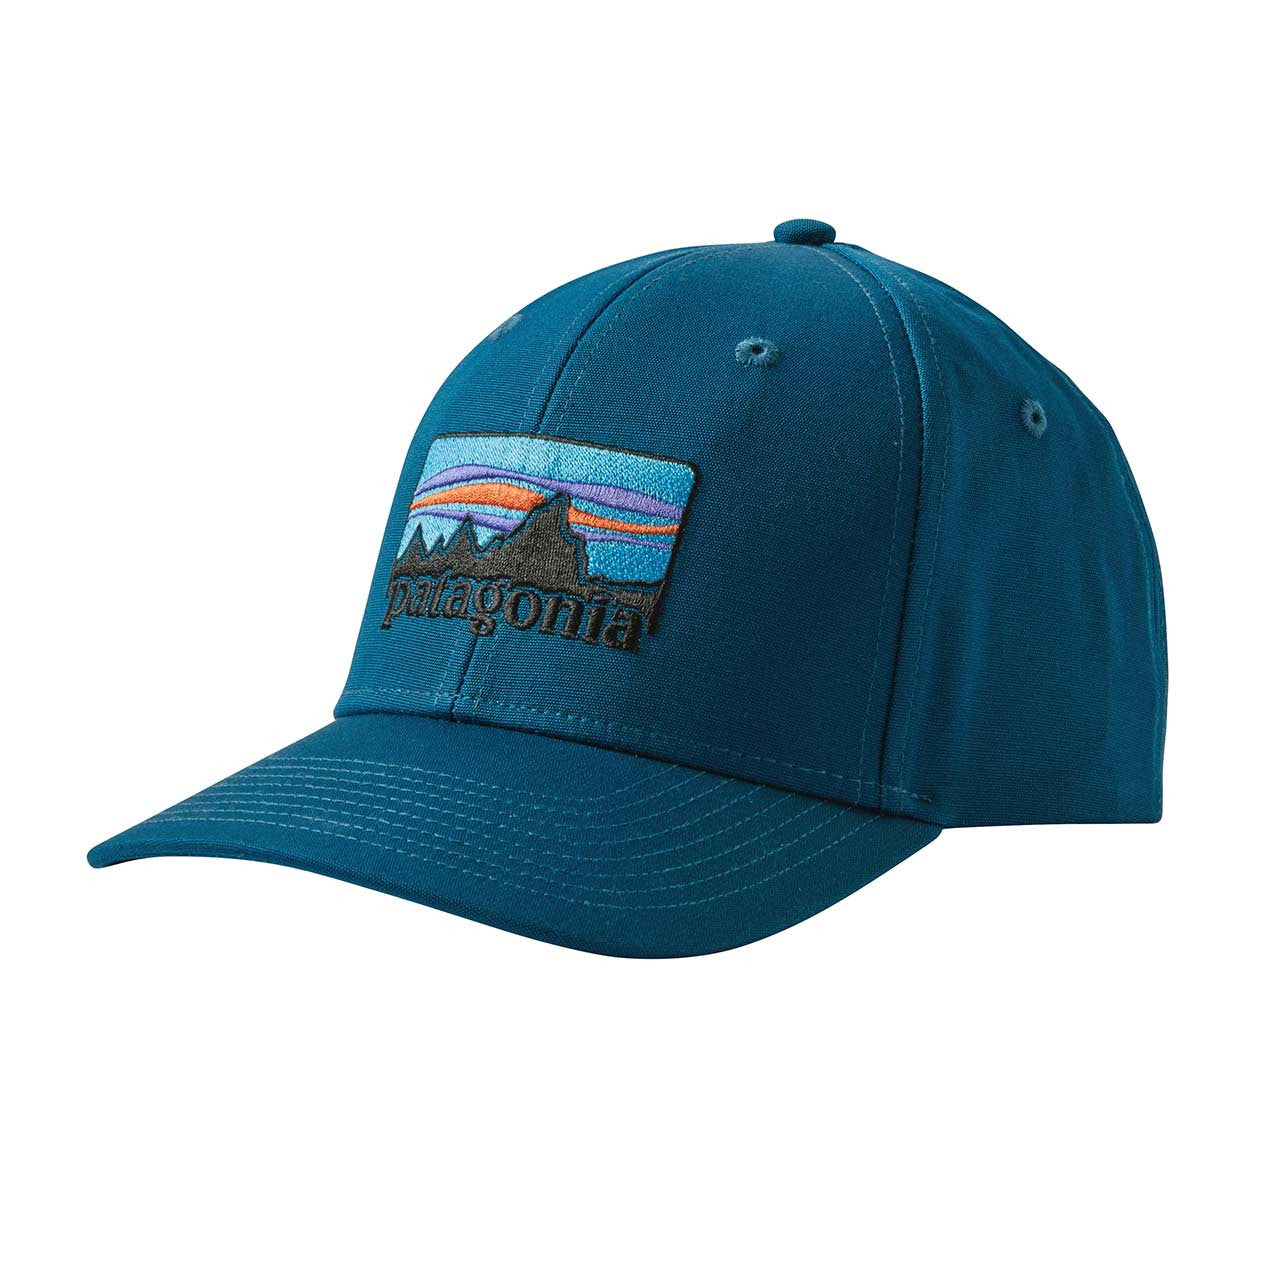 Patagonia_'73 Logo Roger That Hat_Big Sur Blue_ALL